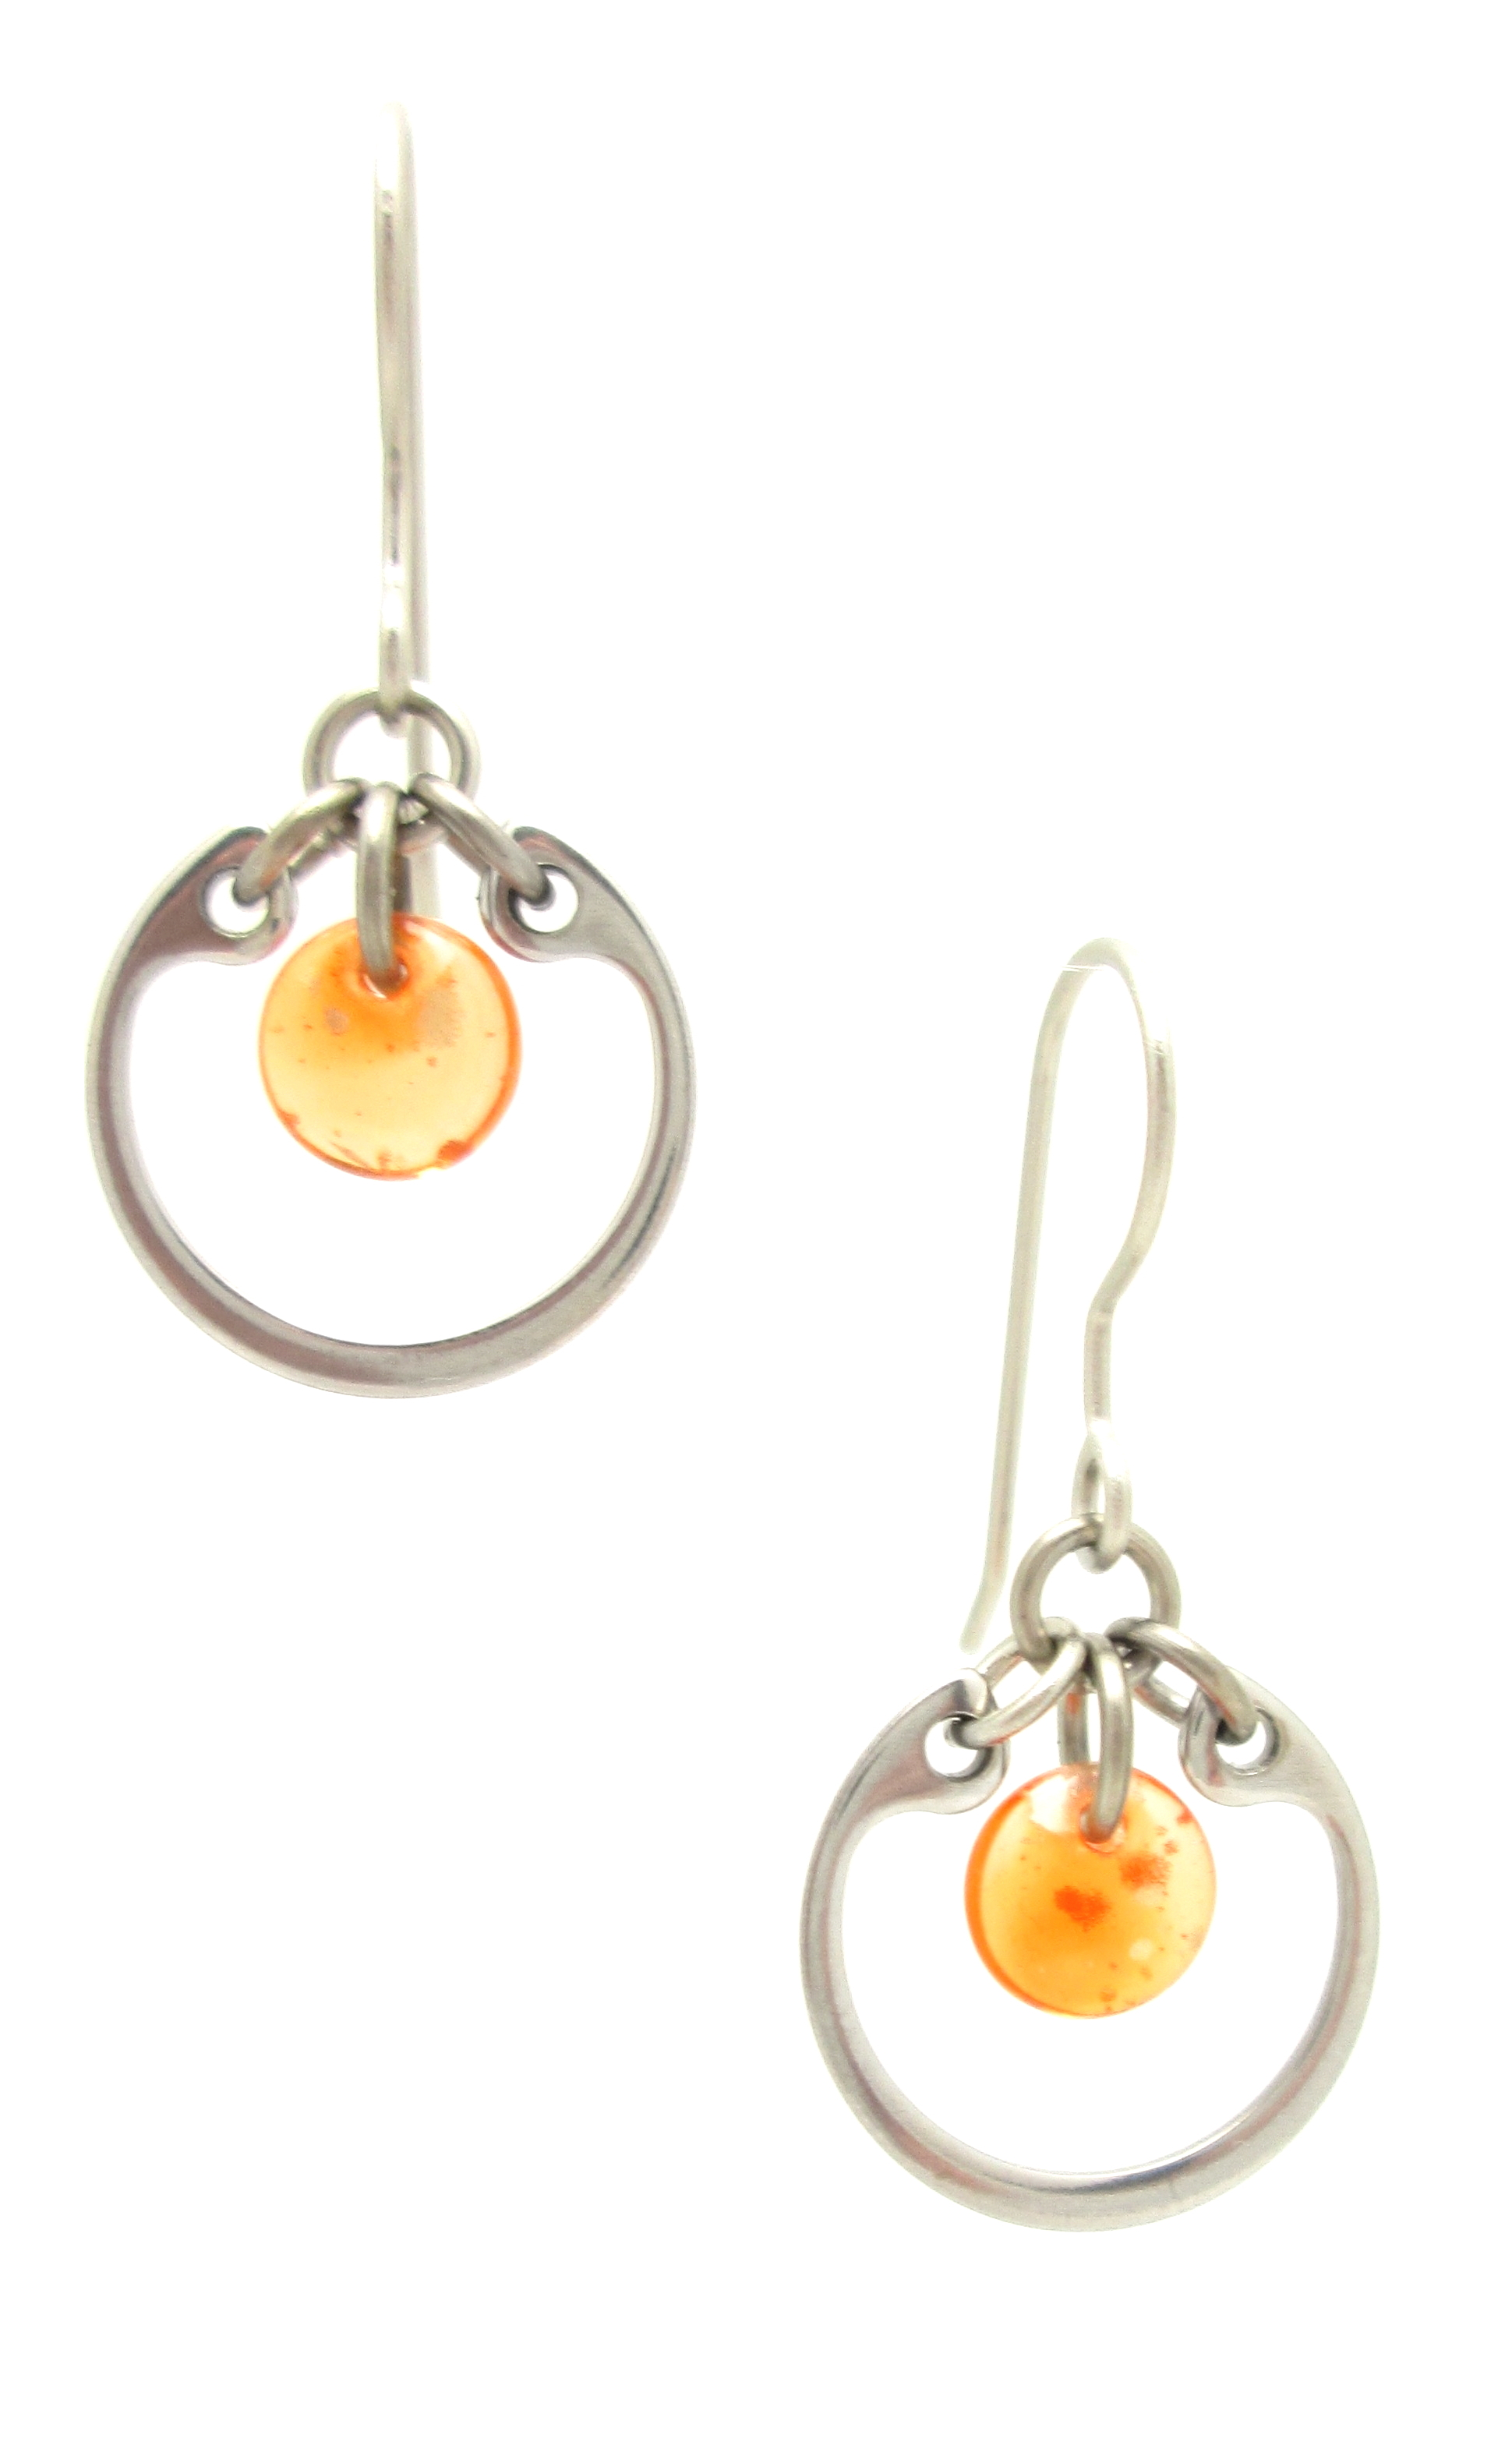 small modern circle earrings by Wraptillion in orange